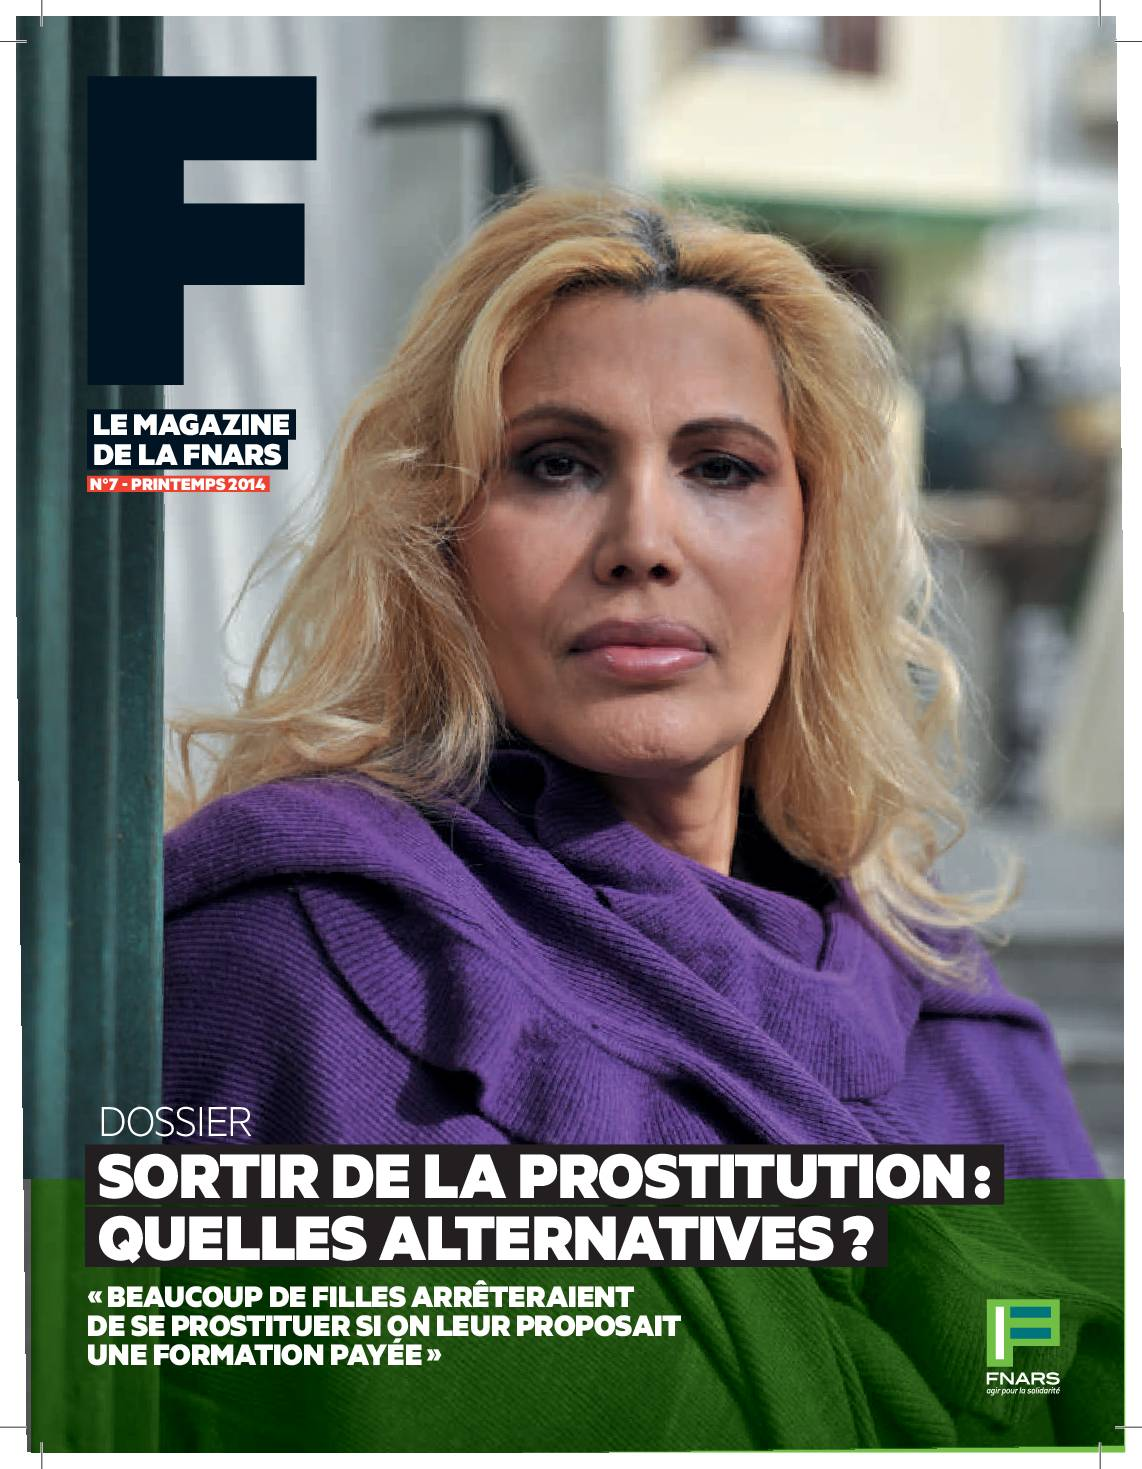 F#7 Sortir de la prostitution : quelles alternatives ?